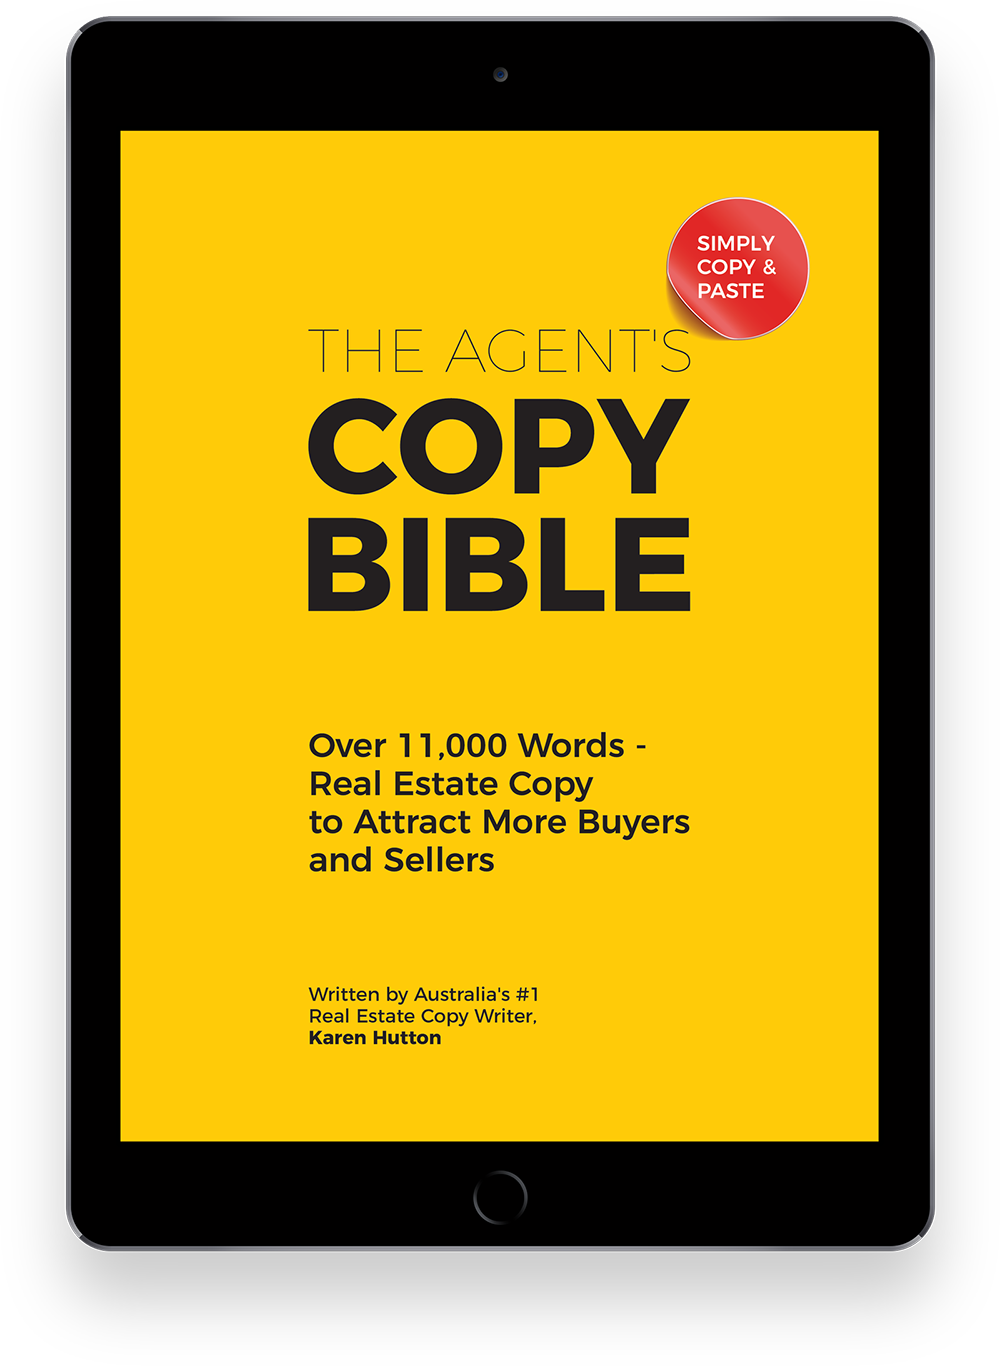 The Agent's Copy Bible